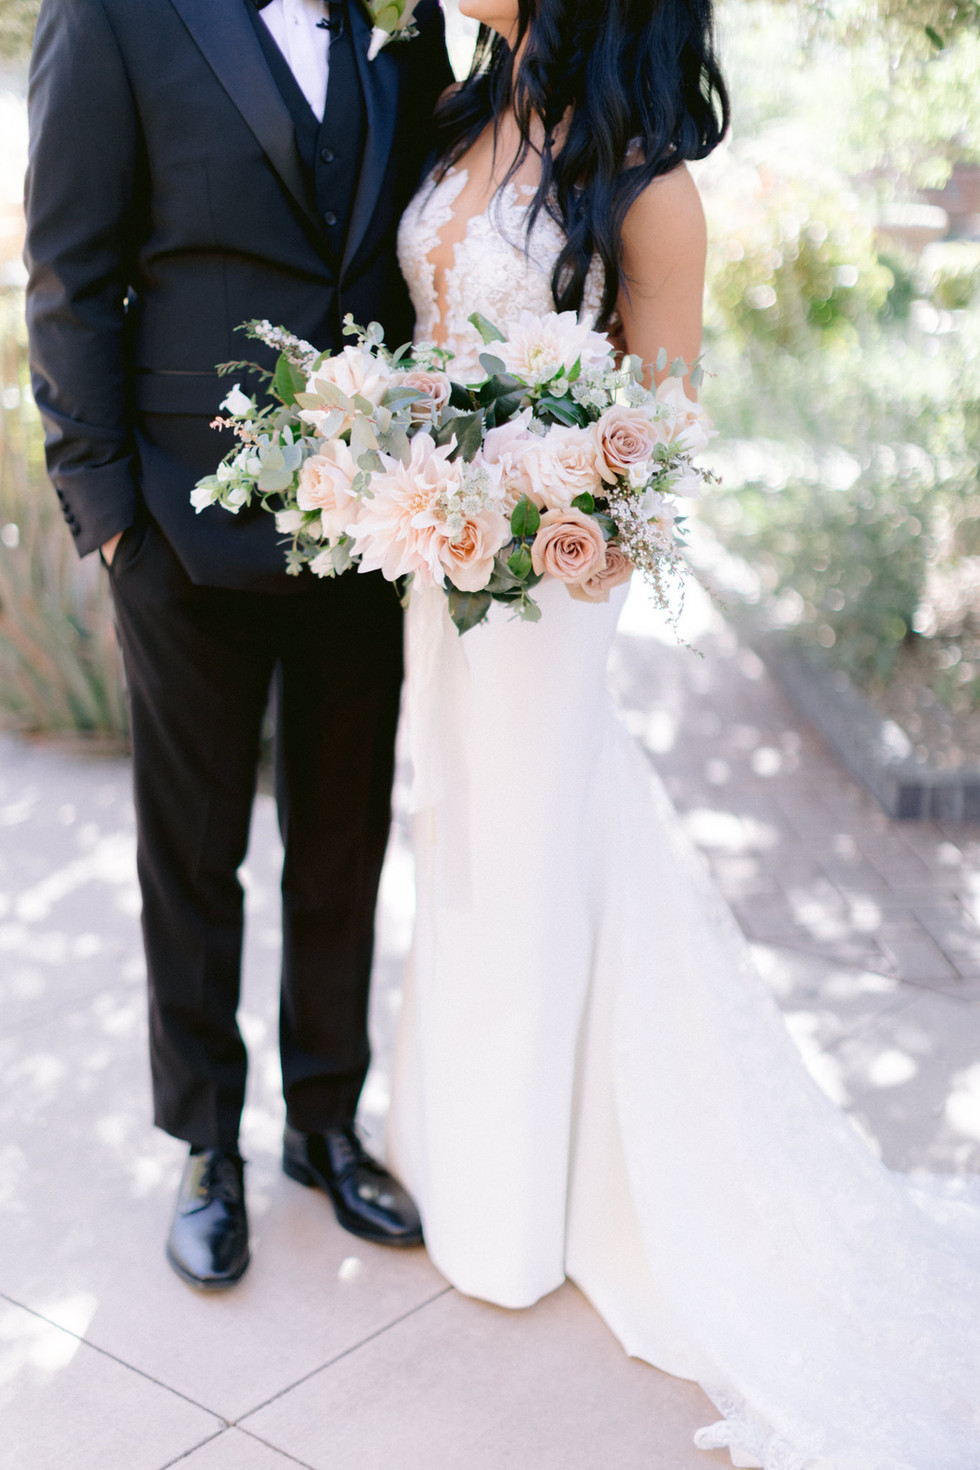 Dahlias, roses, and campanula in shades of blush and dusty rose, tied with long silk ribbons. Photo: Susie and Will